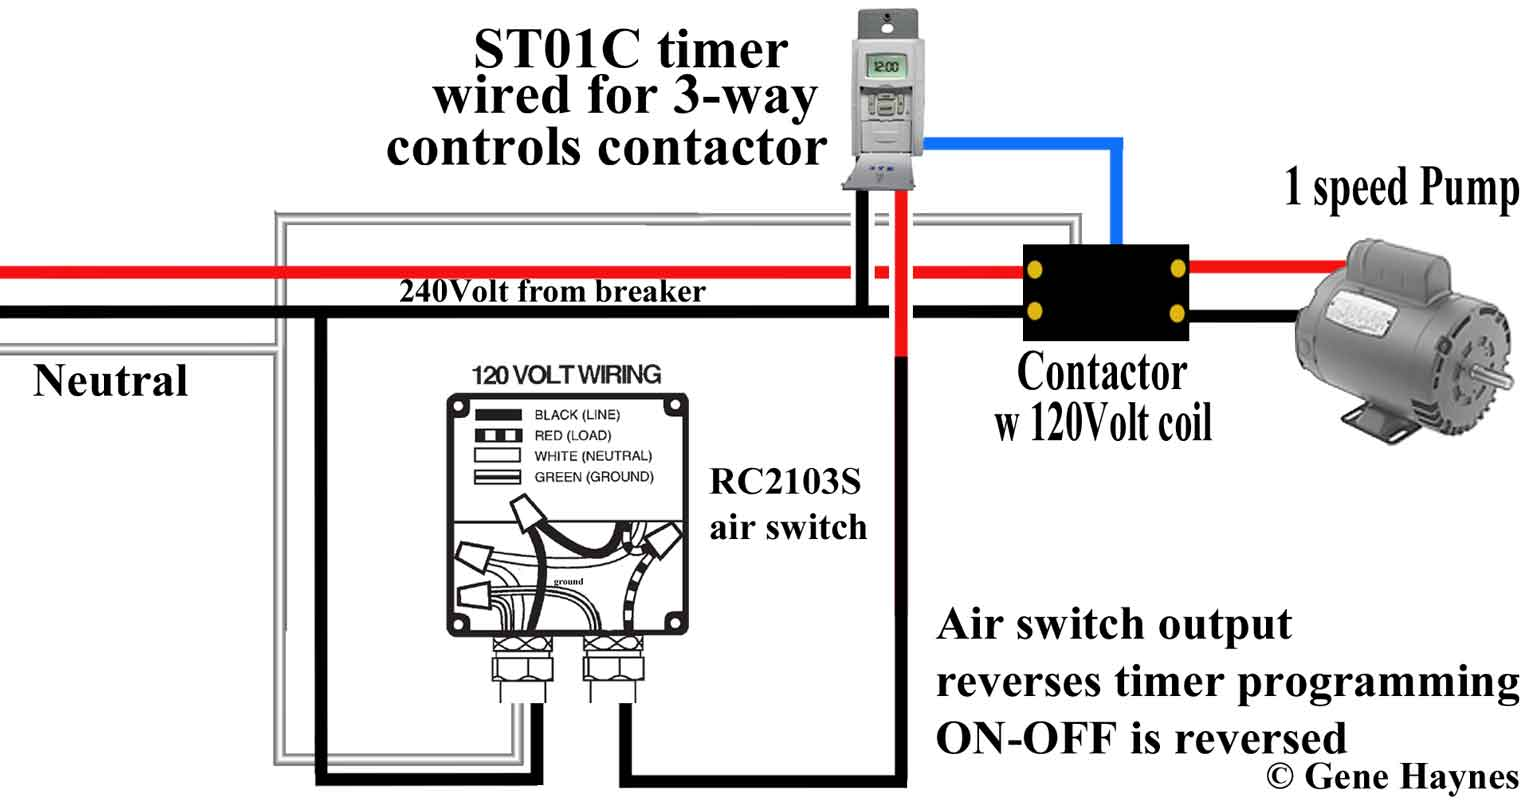 240 volt air switch Intermatic ST01C 800 override thermostat using programmable timer cn101a timer wiring diagram at honlapkeszites.co